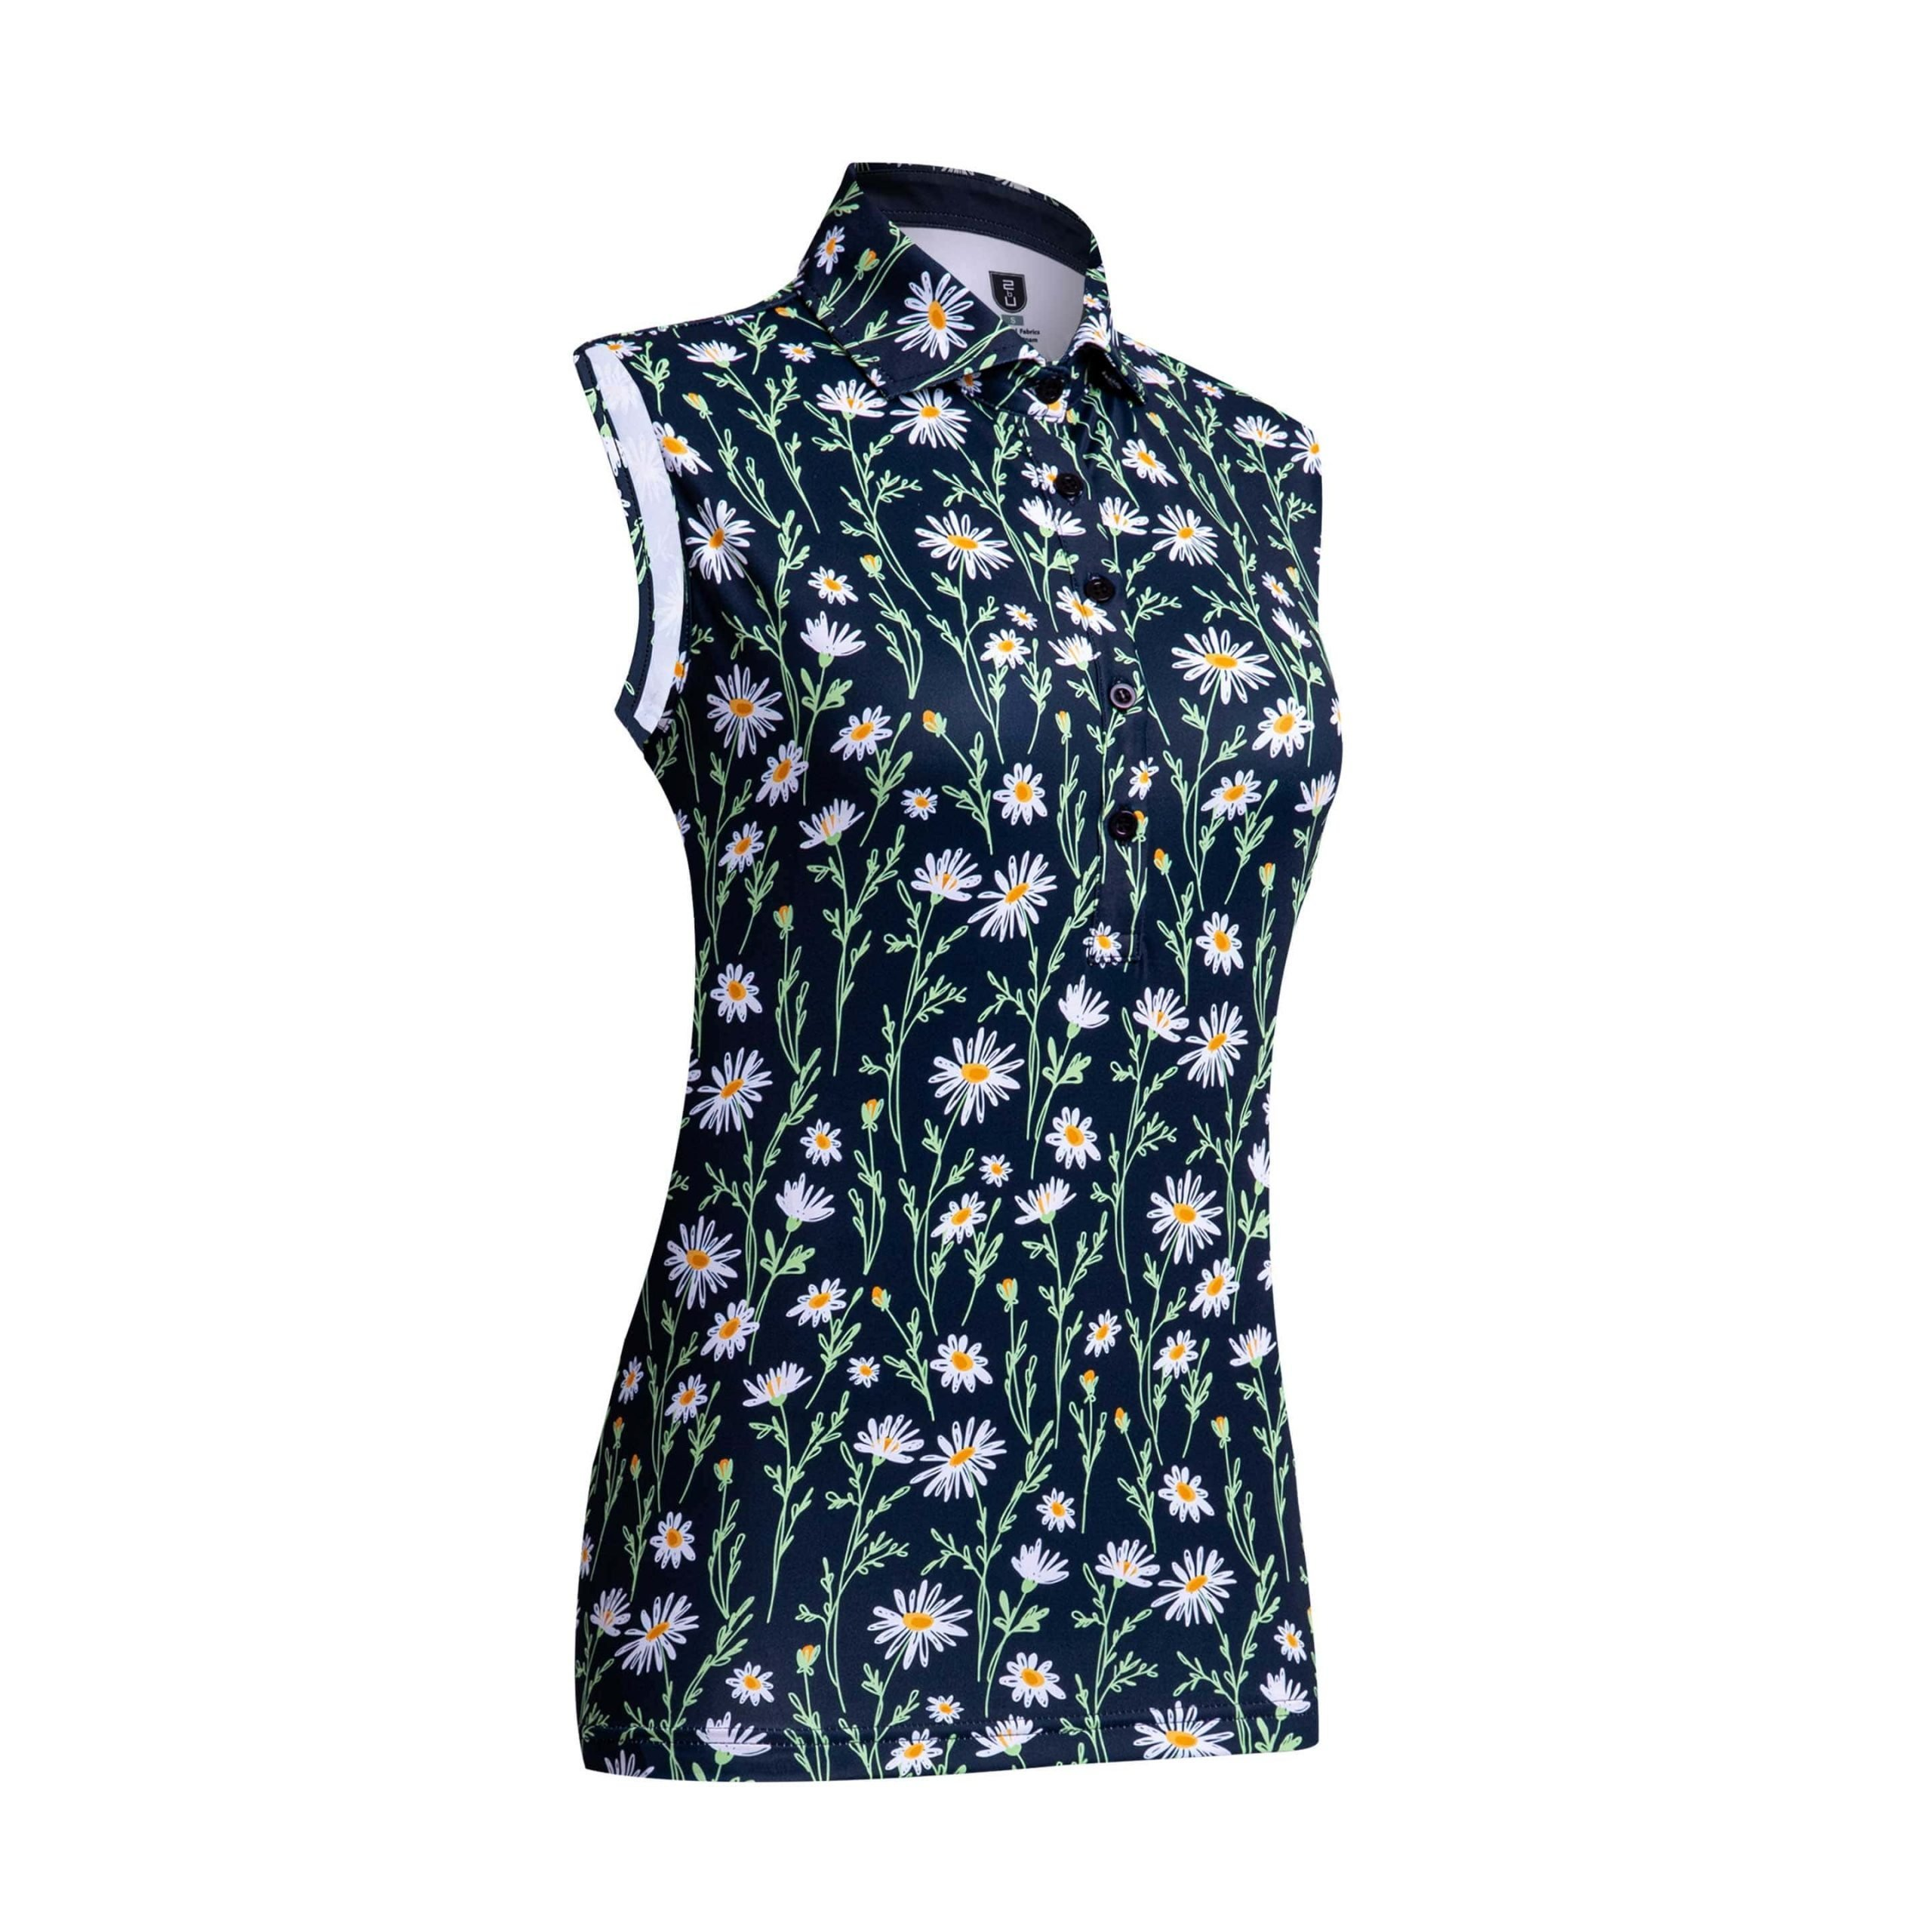 Golf shirt – Midnight Flower (sleeveless)